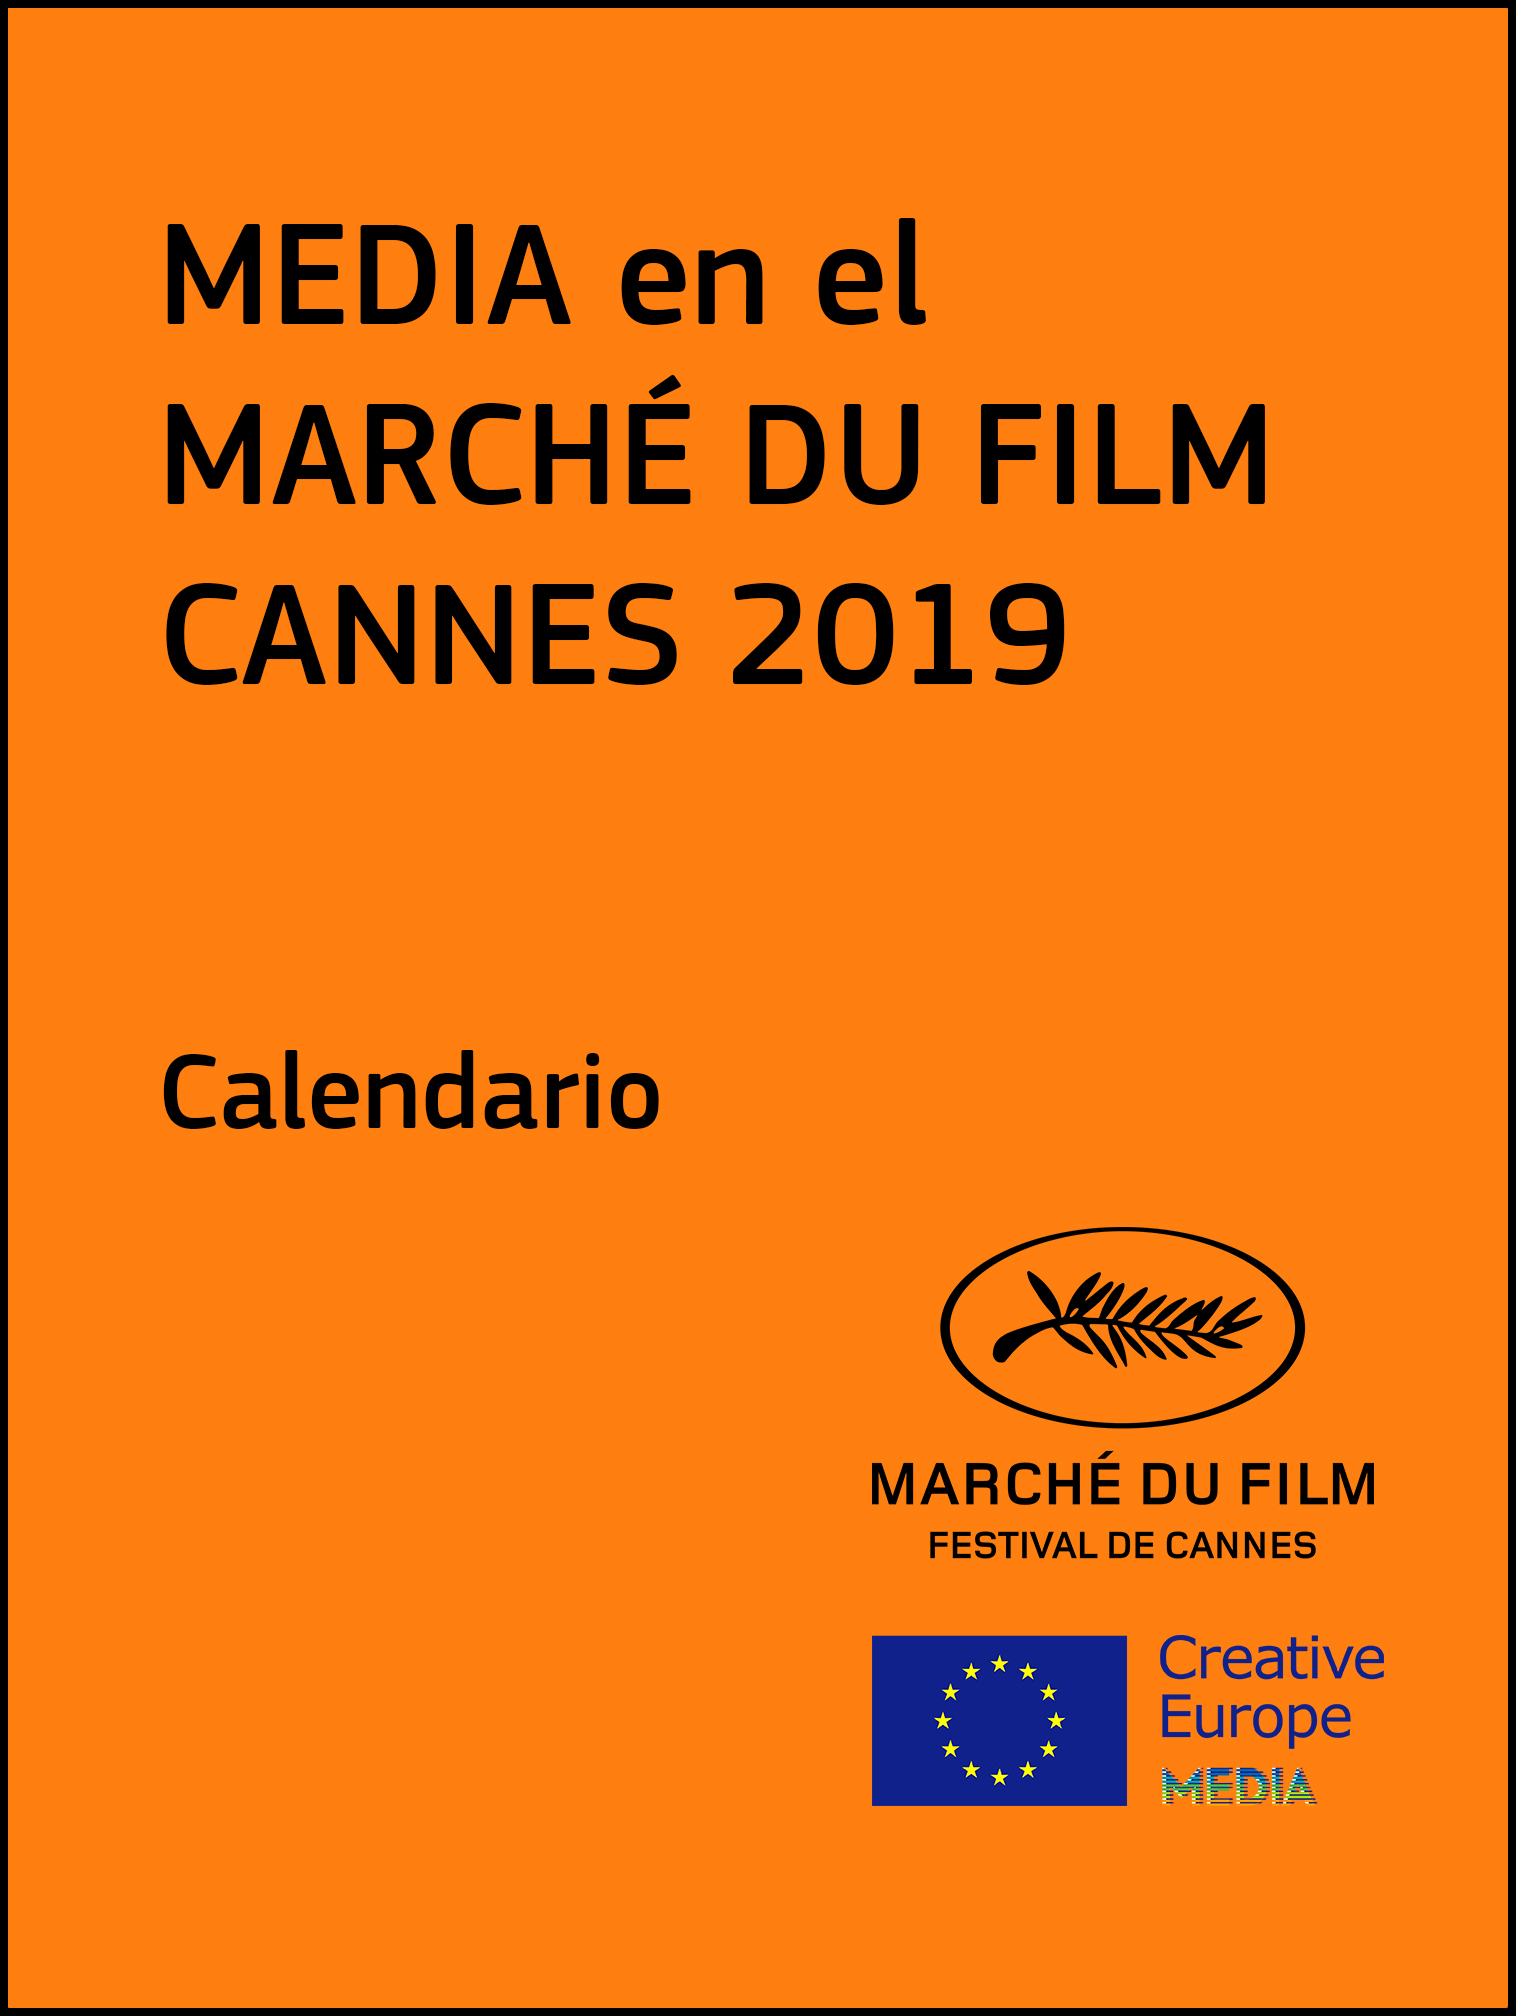 MEDIAMarcheduFilmCannes2019Interior